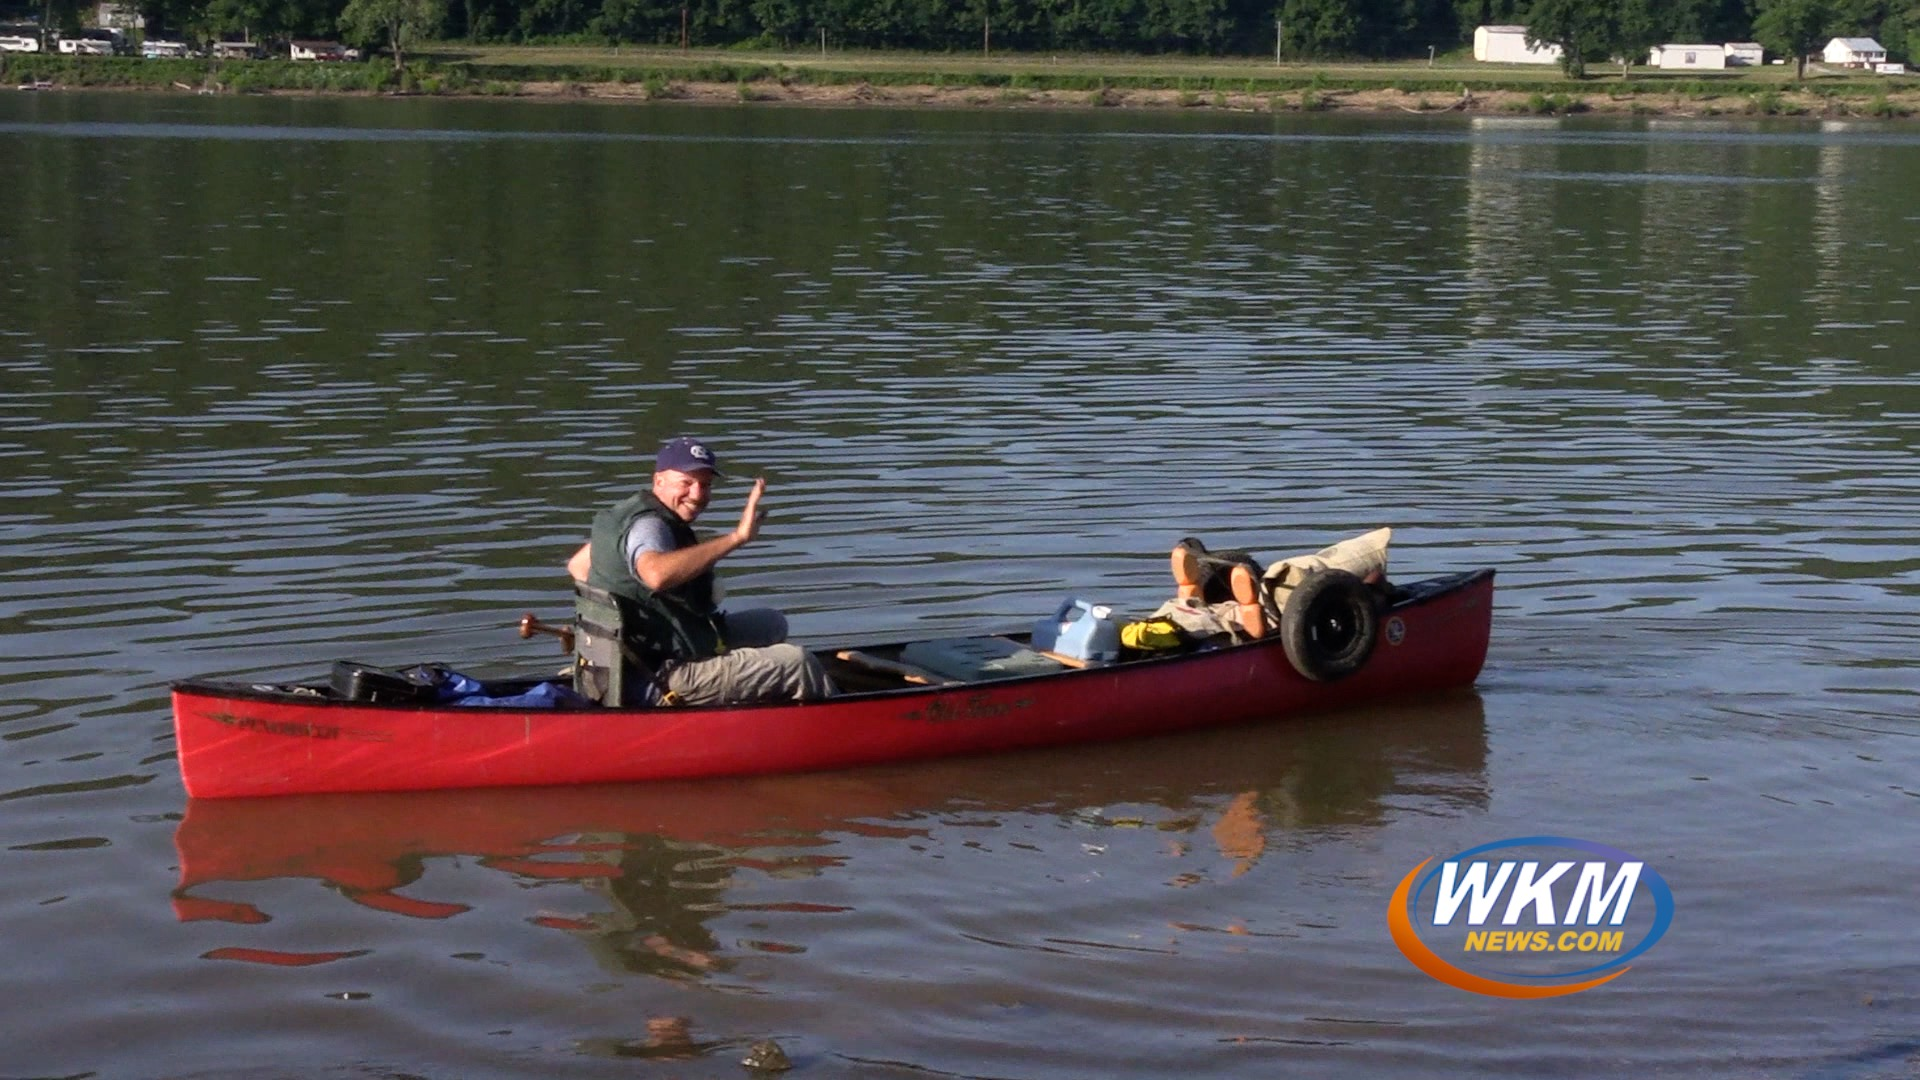 Man Canoeing in Coast to Coast Expedition Enjoys Local Riverfront